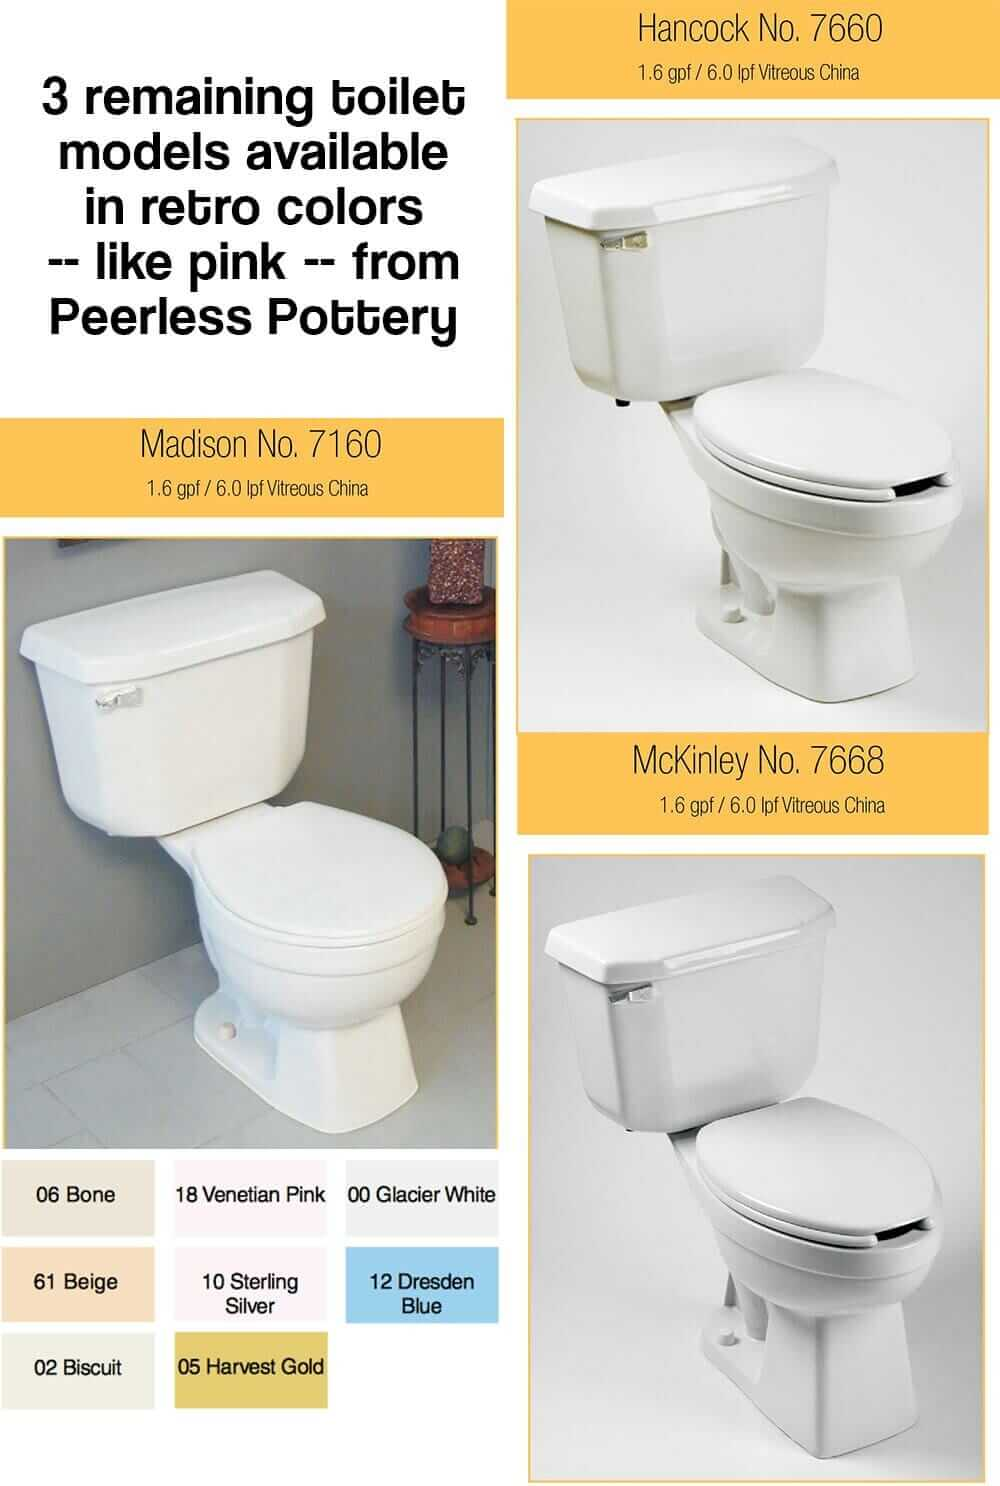 Inspirational In the last few years getting a new toilet in retro colors u like pink blue beige or harvest gold u seems to be being more and more of a challenge